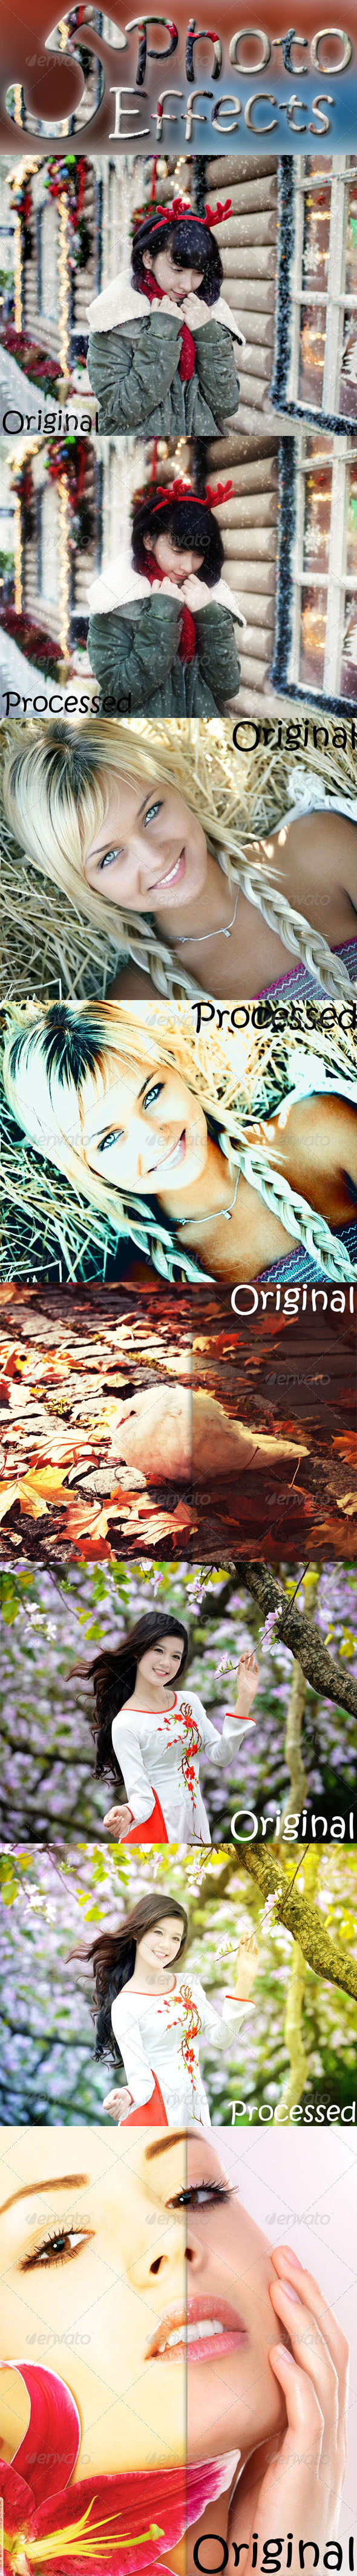 GraphicRiver 5 Photo Effects 7441929